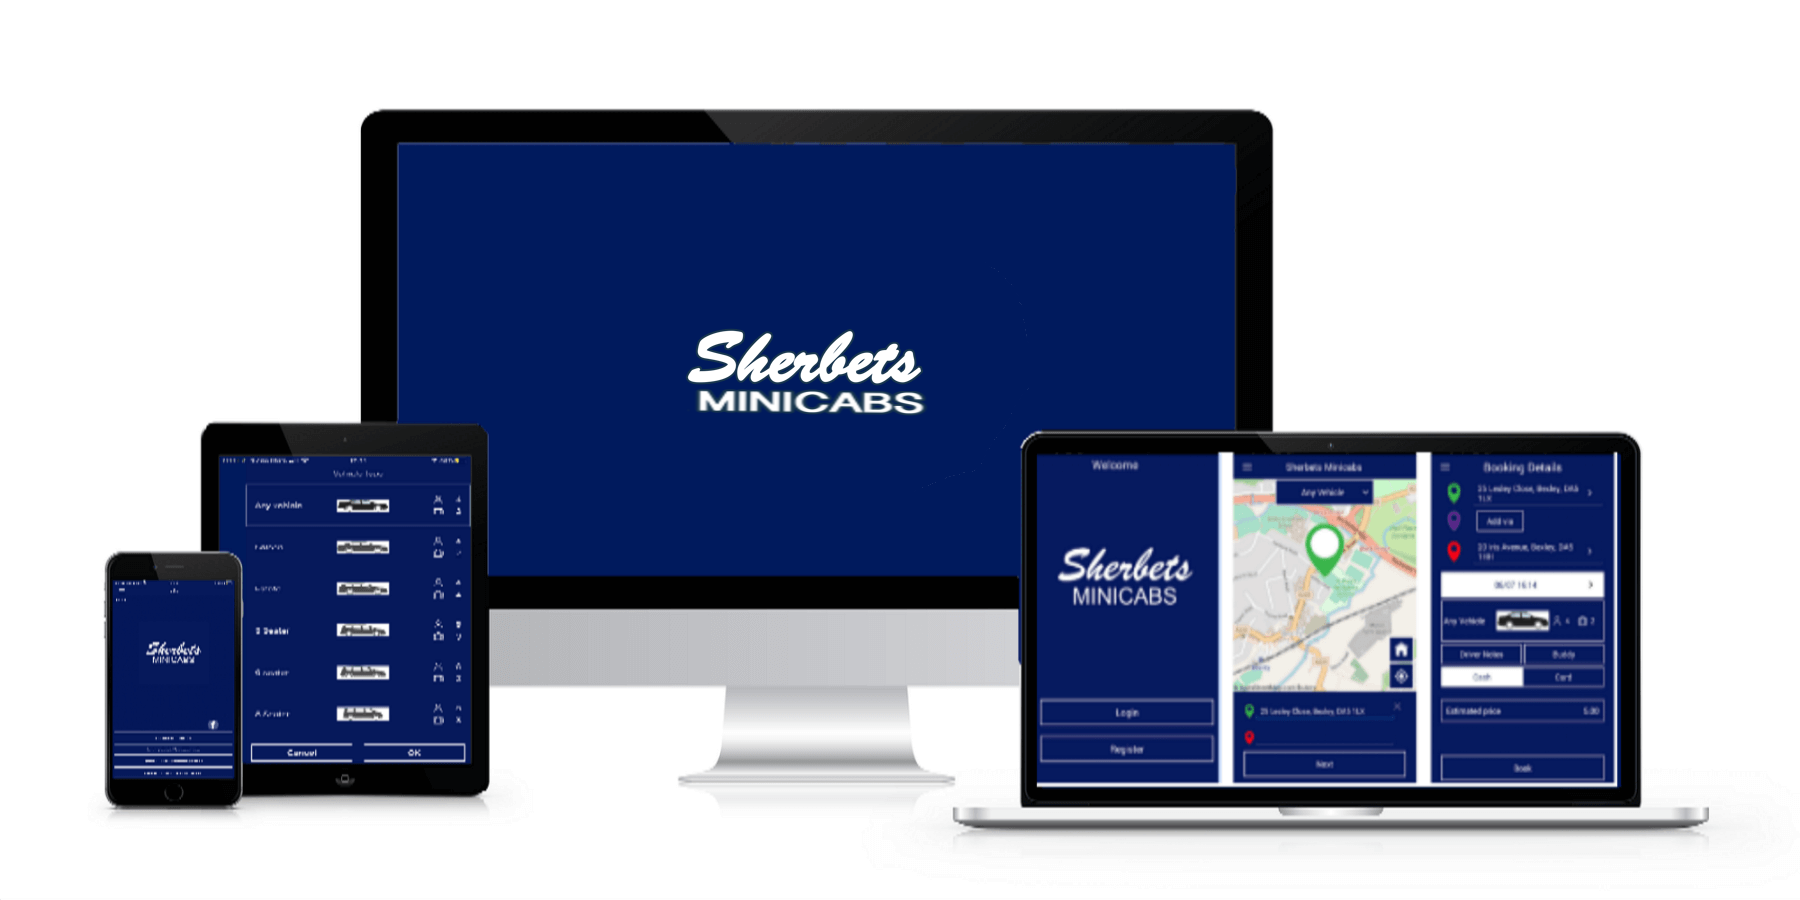 Download Our App - Sherbets Mini Cabs Near Me